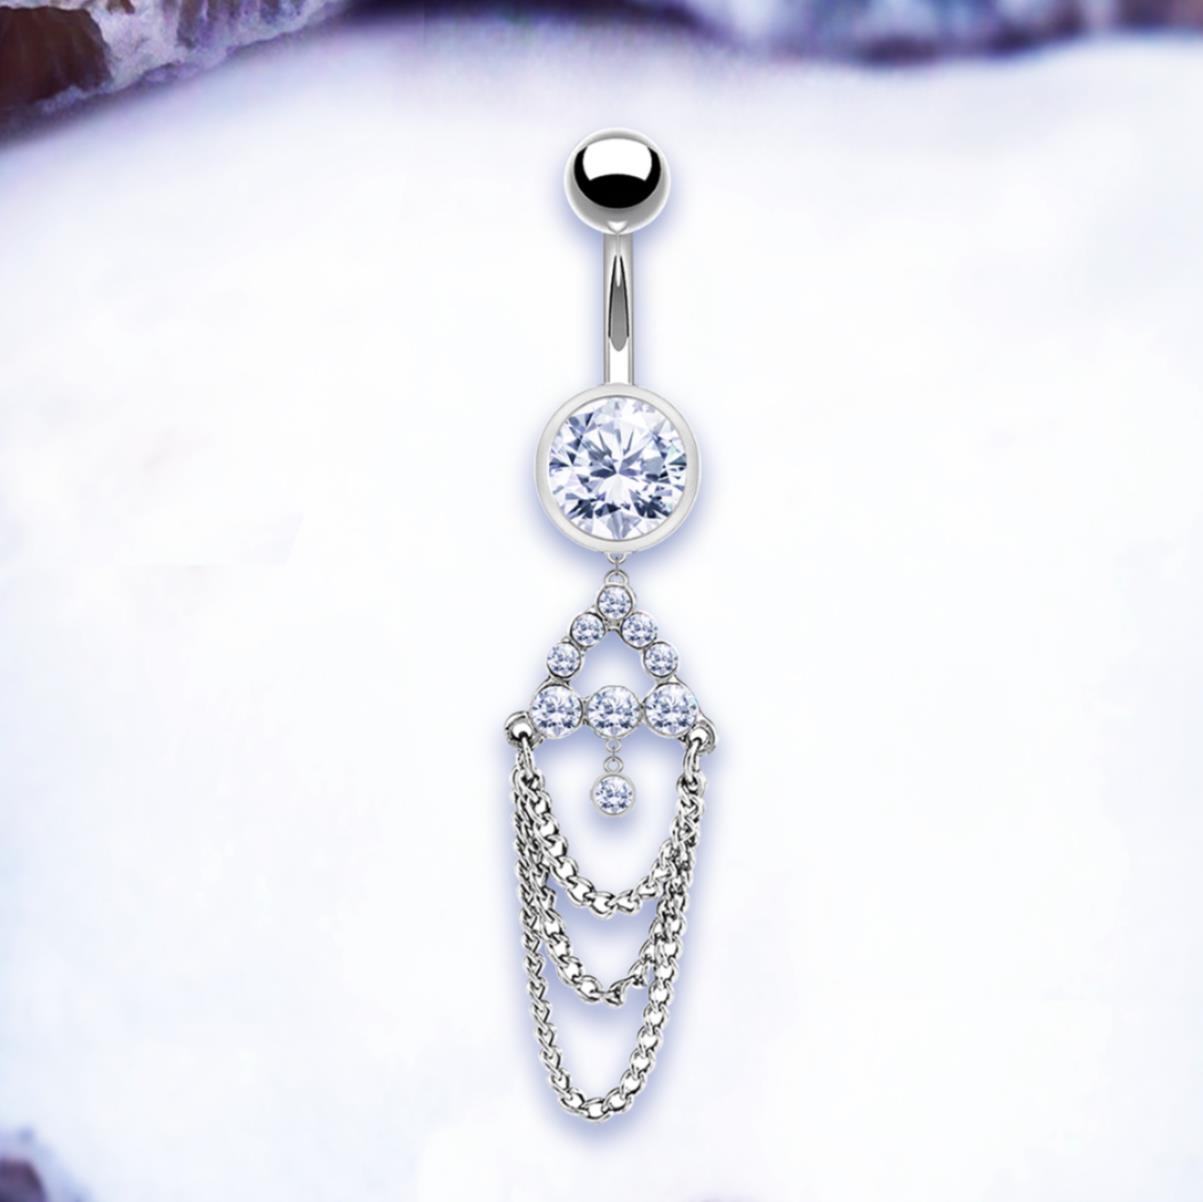 Details About Mila Dangle Belly Bar Chain Belly Button Rings Silver Navel Ring Crystal Navel